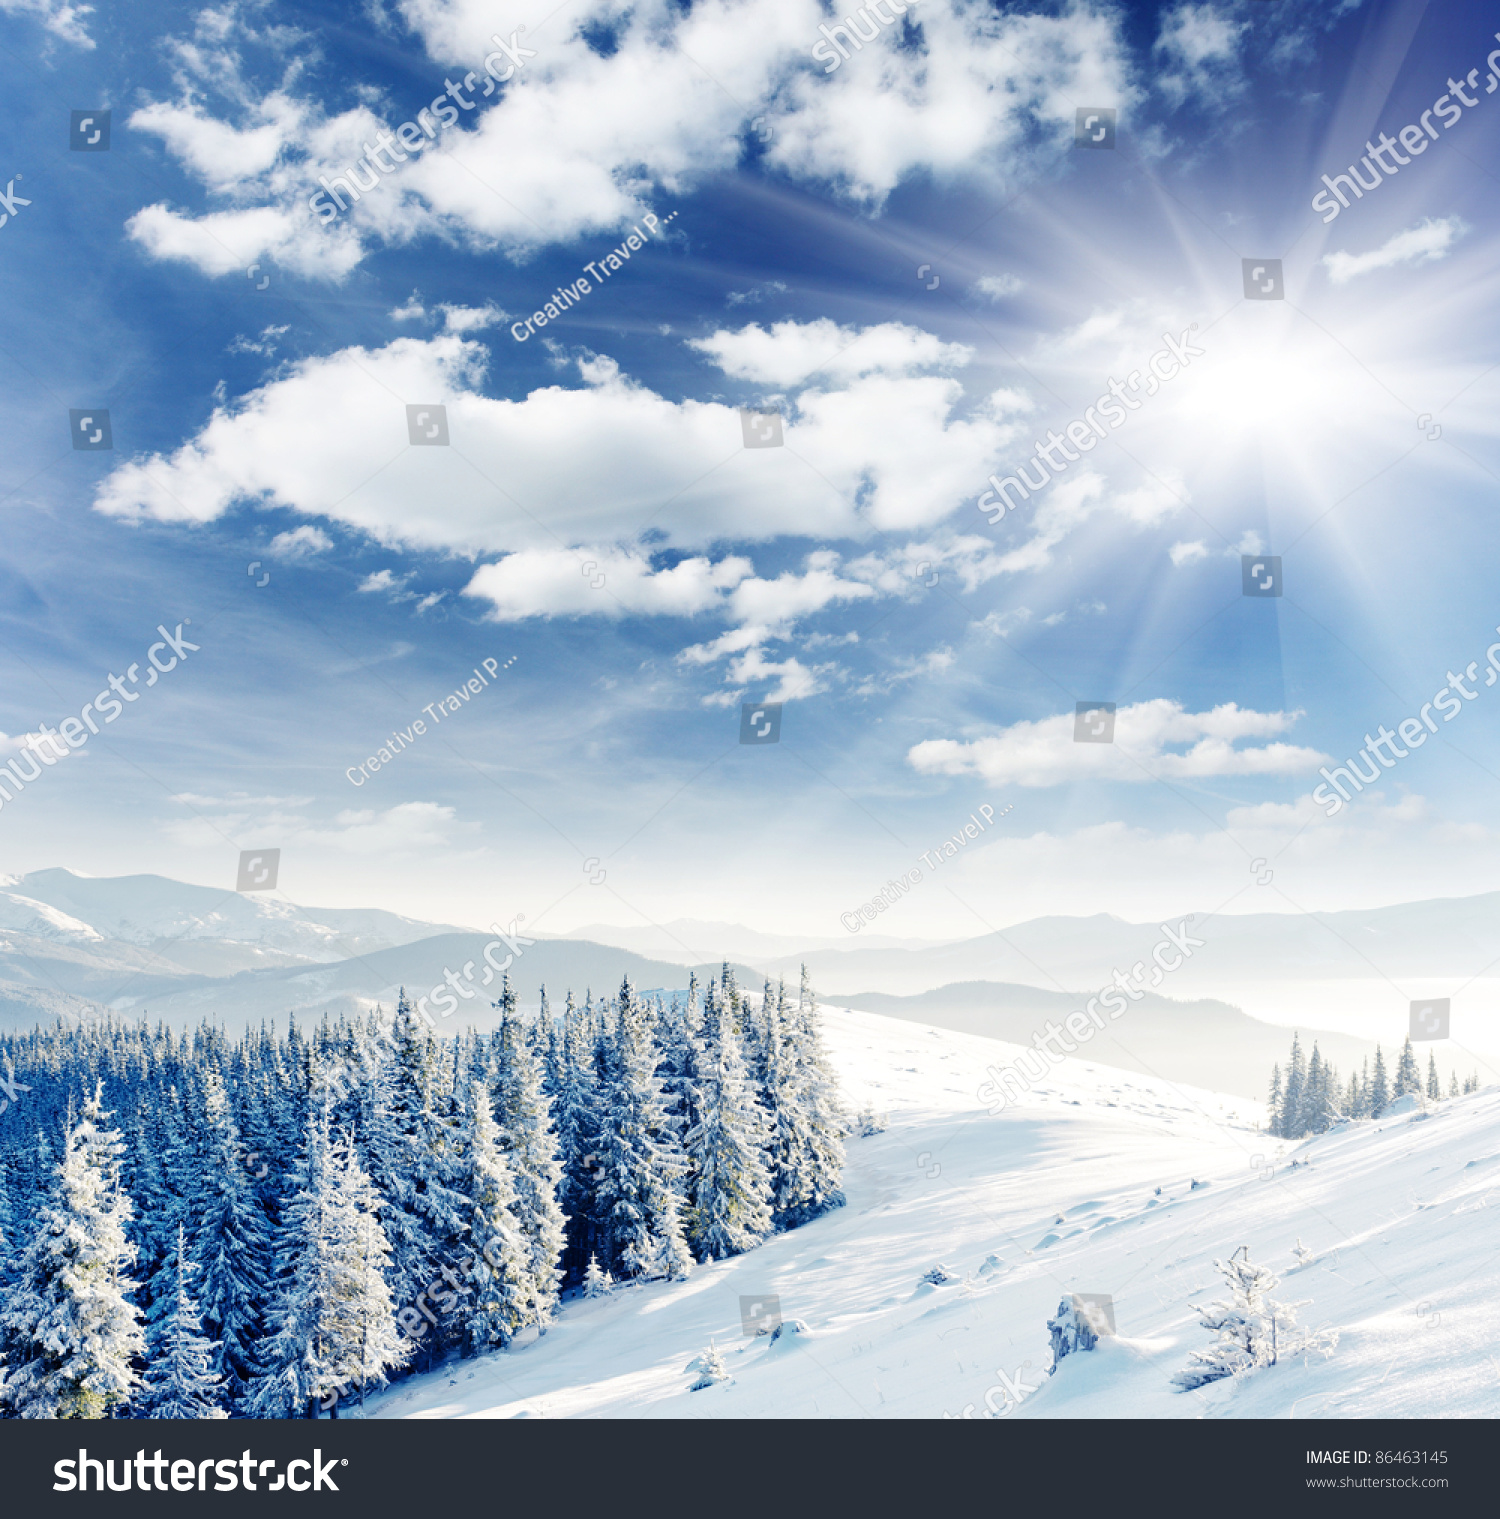 Beautiful Winter Landscape Snow Covered Trees Stock Photo